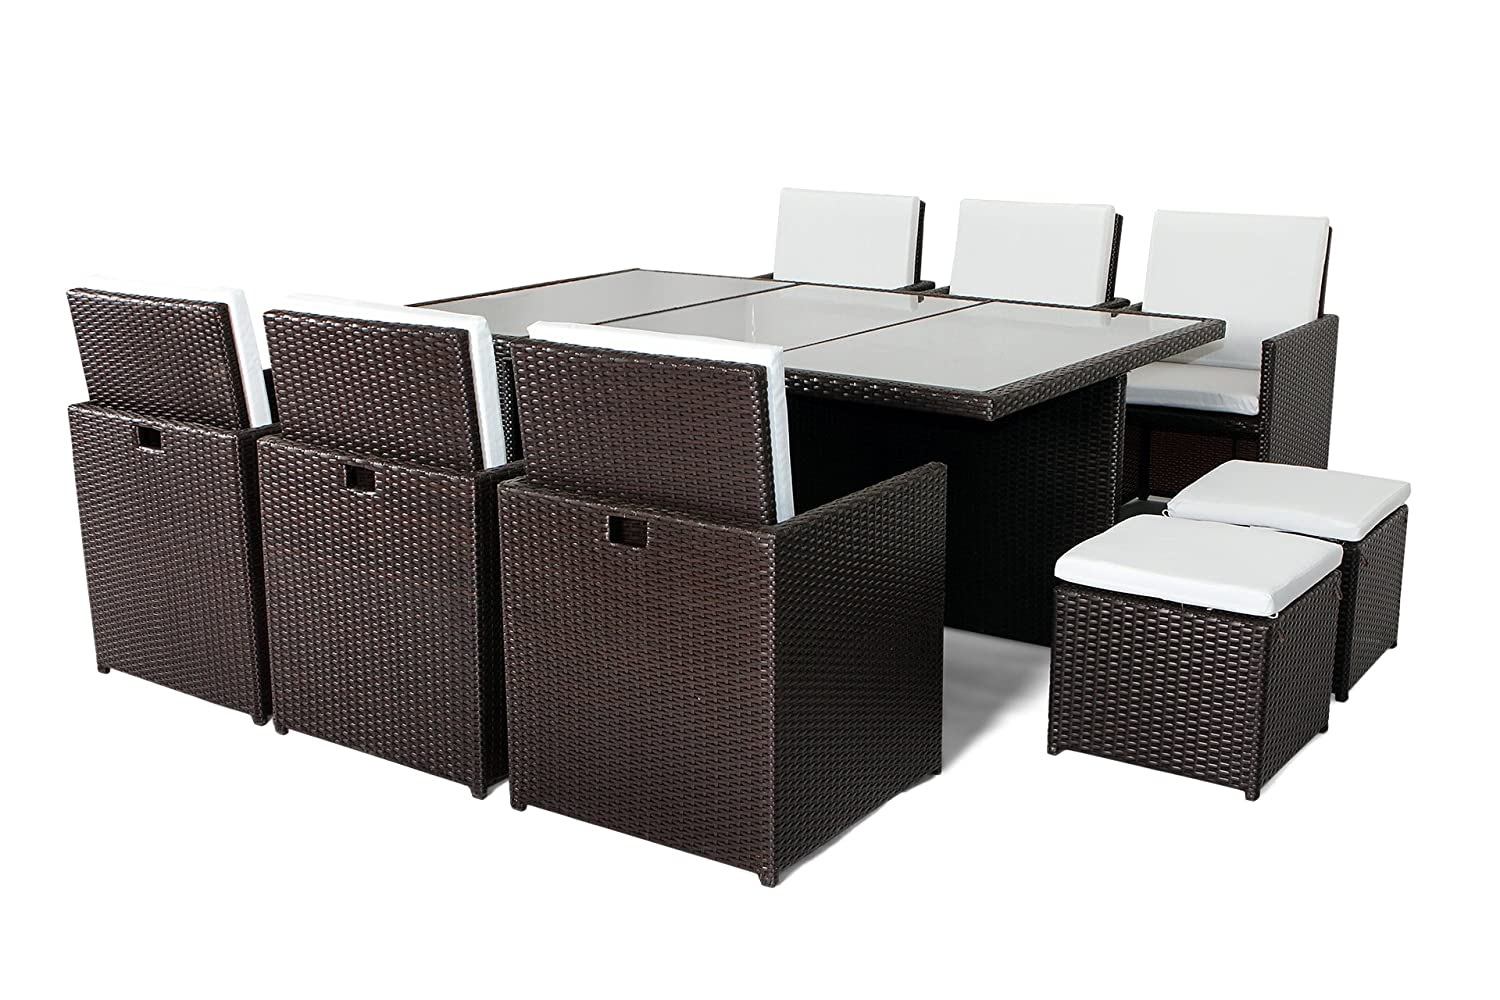 rattanm bel sitzgruppe nassau deluxe 195x130 5 5cm polster braun jetzt bestellen. Black Bedroom Furniture Sets. Home Design Ideas